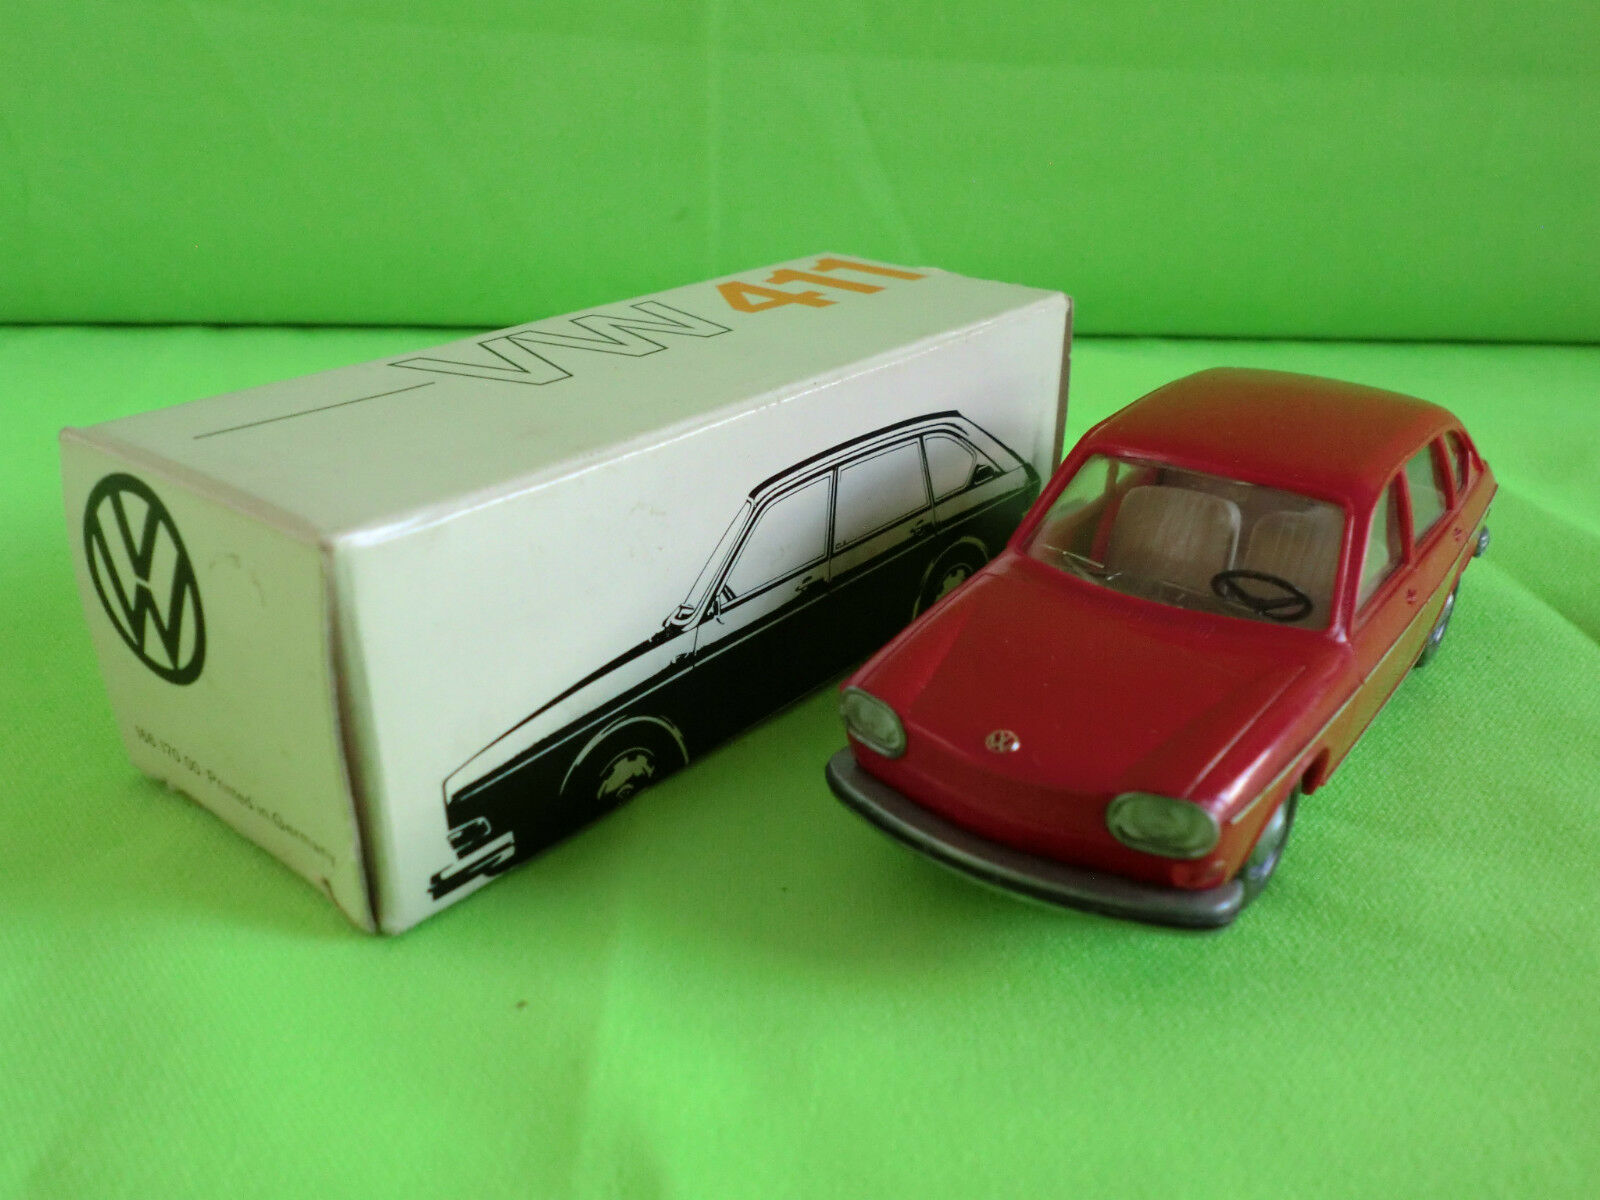 CURSOR 1 40   VOLKSWAGEN    VW 411  -   IN BOX  - IN NEAR  MINT CONDITION